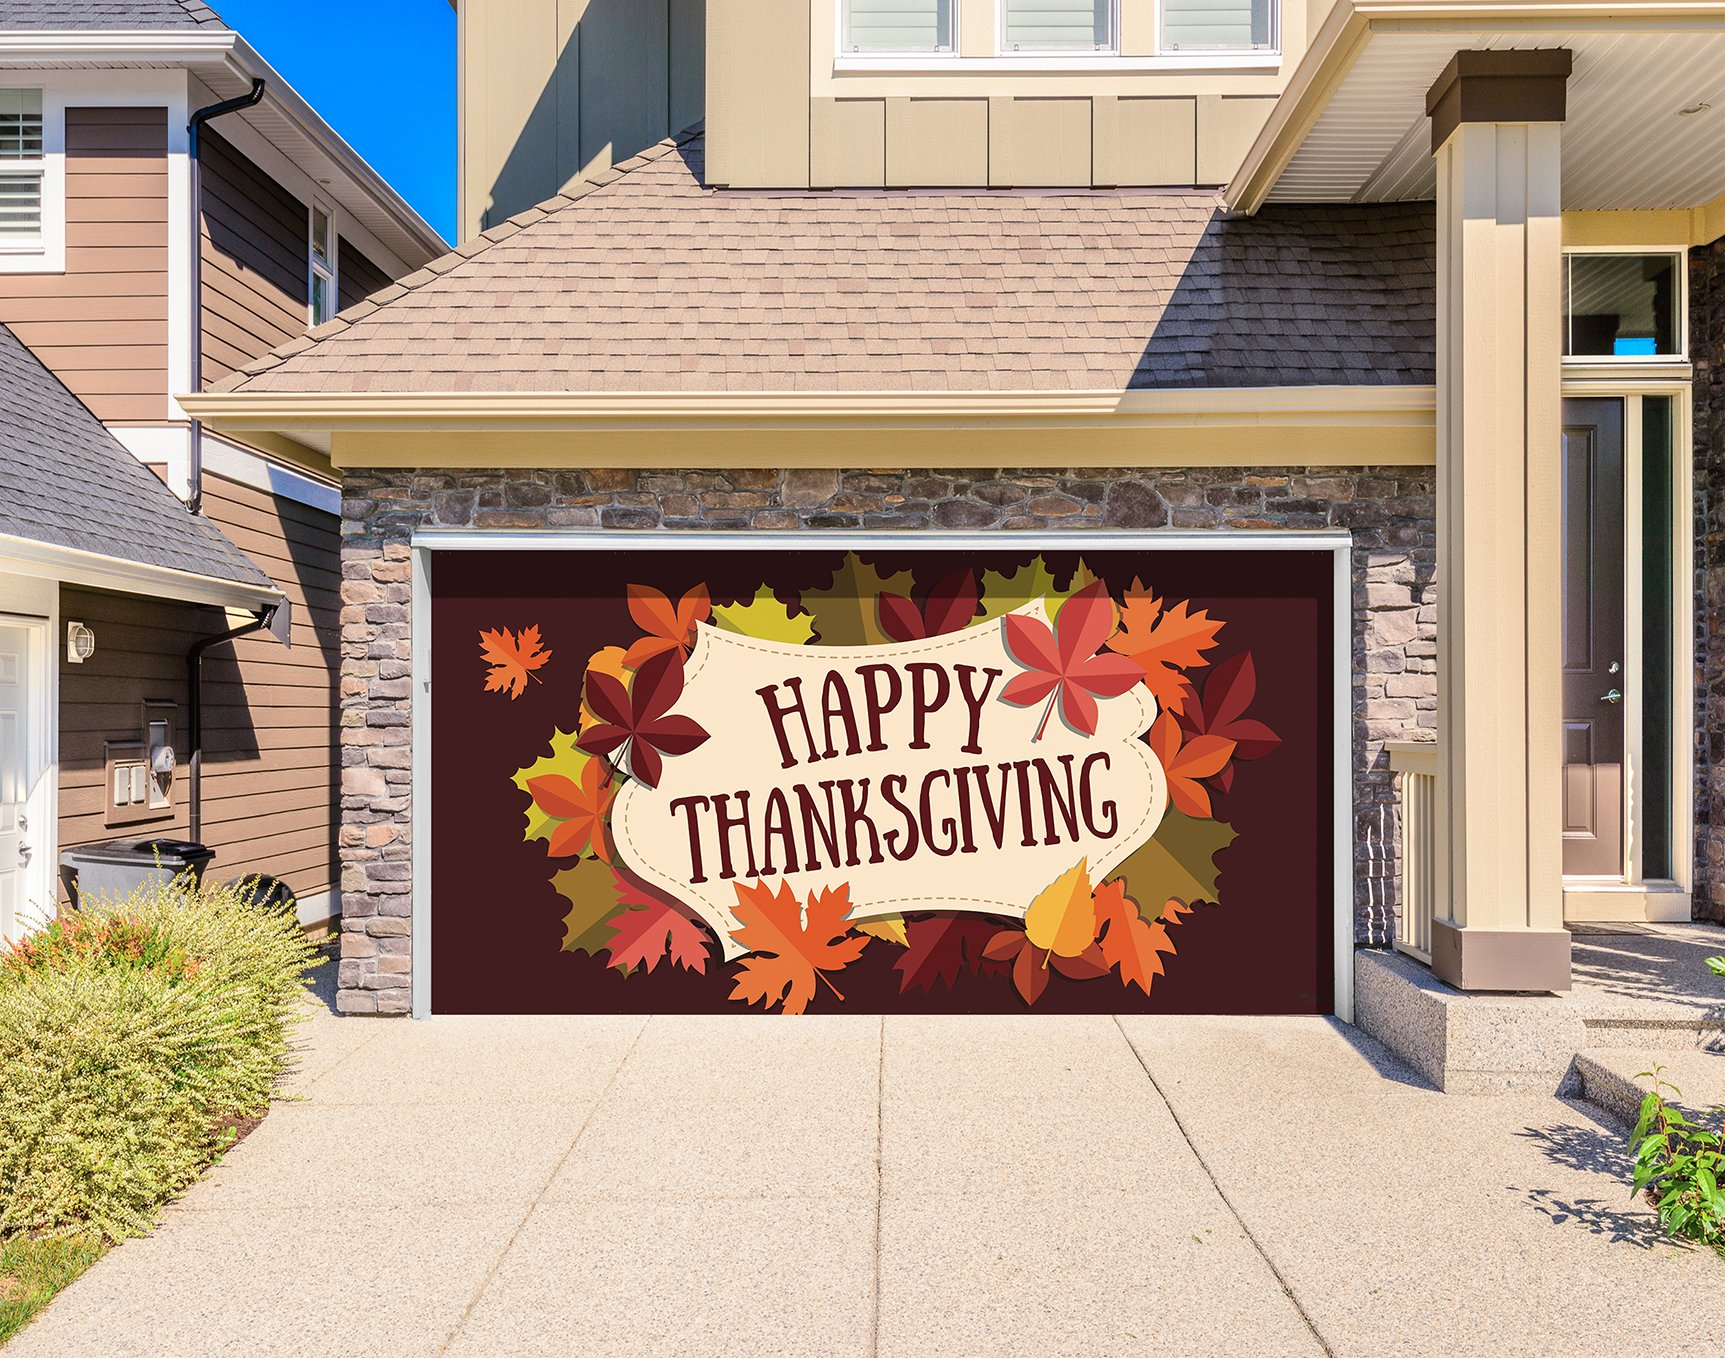 Outdoor Thanksgiving Holiday Garage Door Banner Cover Mural Décoration - Happy Thanksgiving Fall Leaves - Outdoor Thanksgiving Holiday Garage Door Banner Décor Sign 8' x 16'